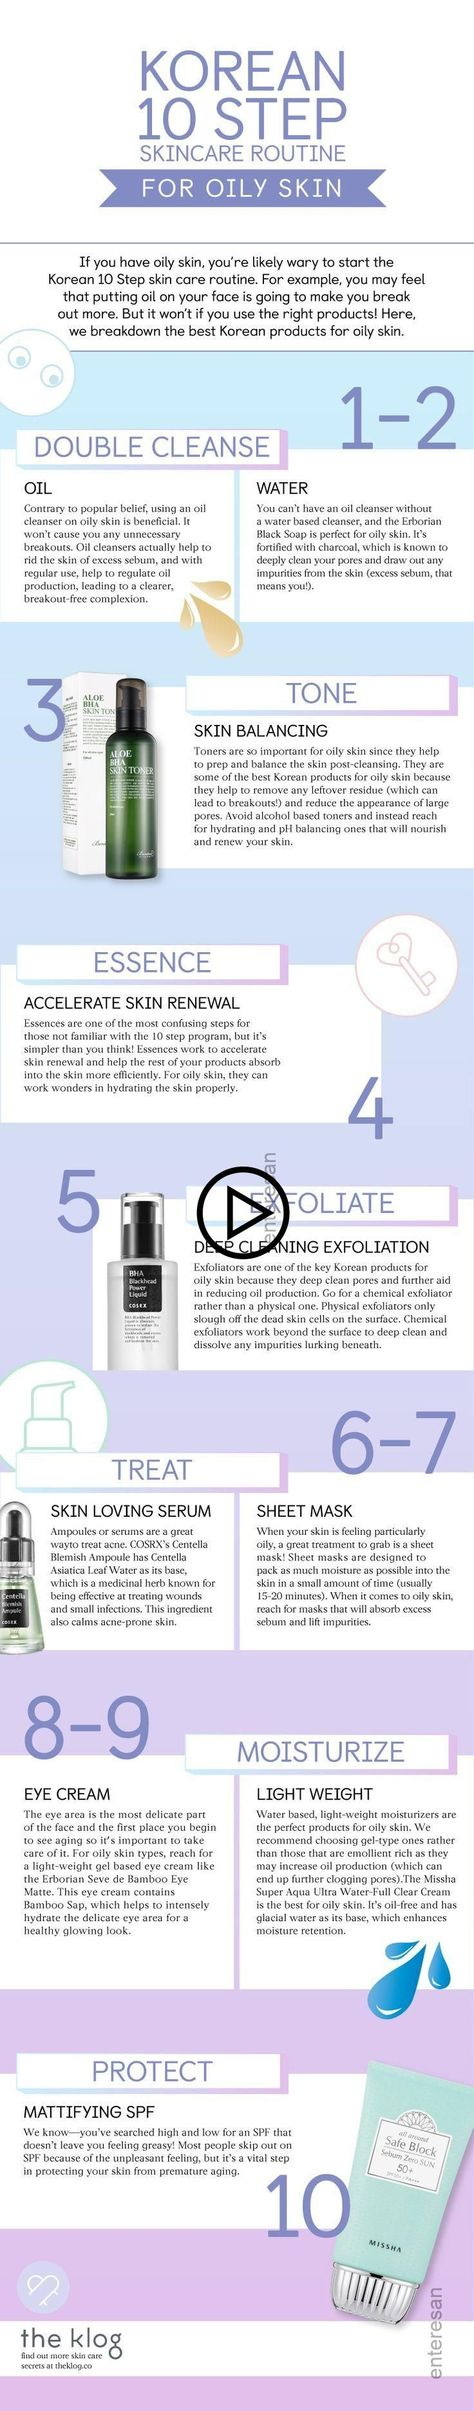 #Best  #Korean  #Products  #for  #Oily  #Skin  #  #  #bodycareroutine  #Bath  #and  #Body  #Care,  #bath  #Body  #bodycareroutine  #Care  #Korean  #oily  #Products  #skin,The Best Korean Products for Oily Skin  #bodycareroutine Bath and Body Care...   The